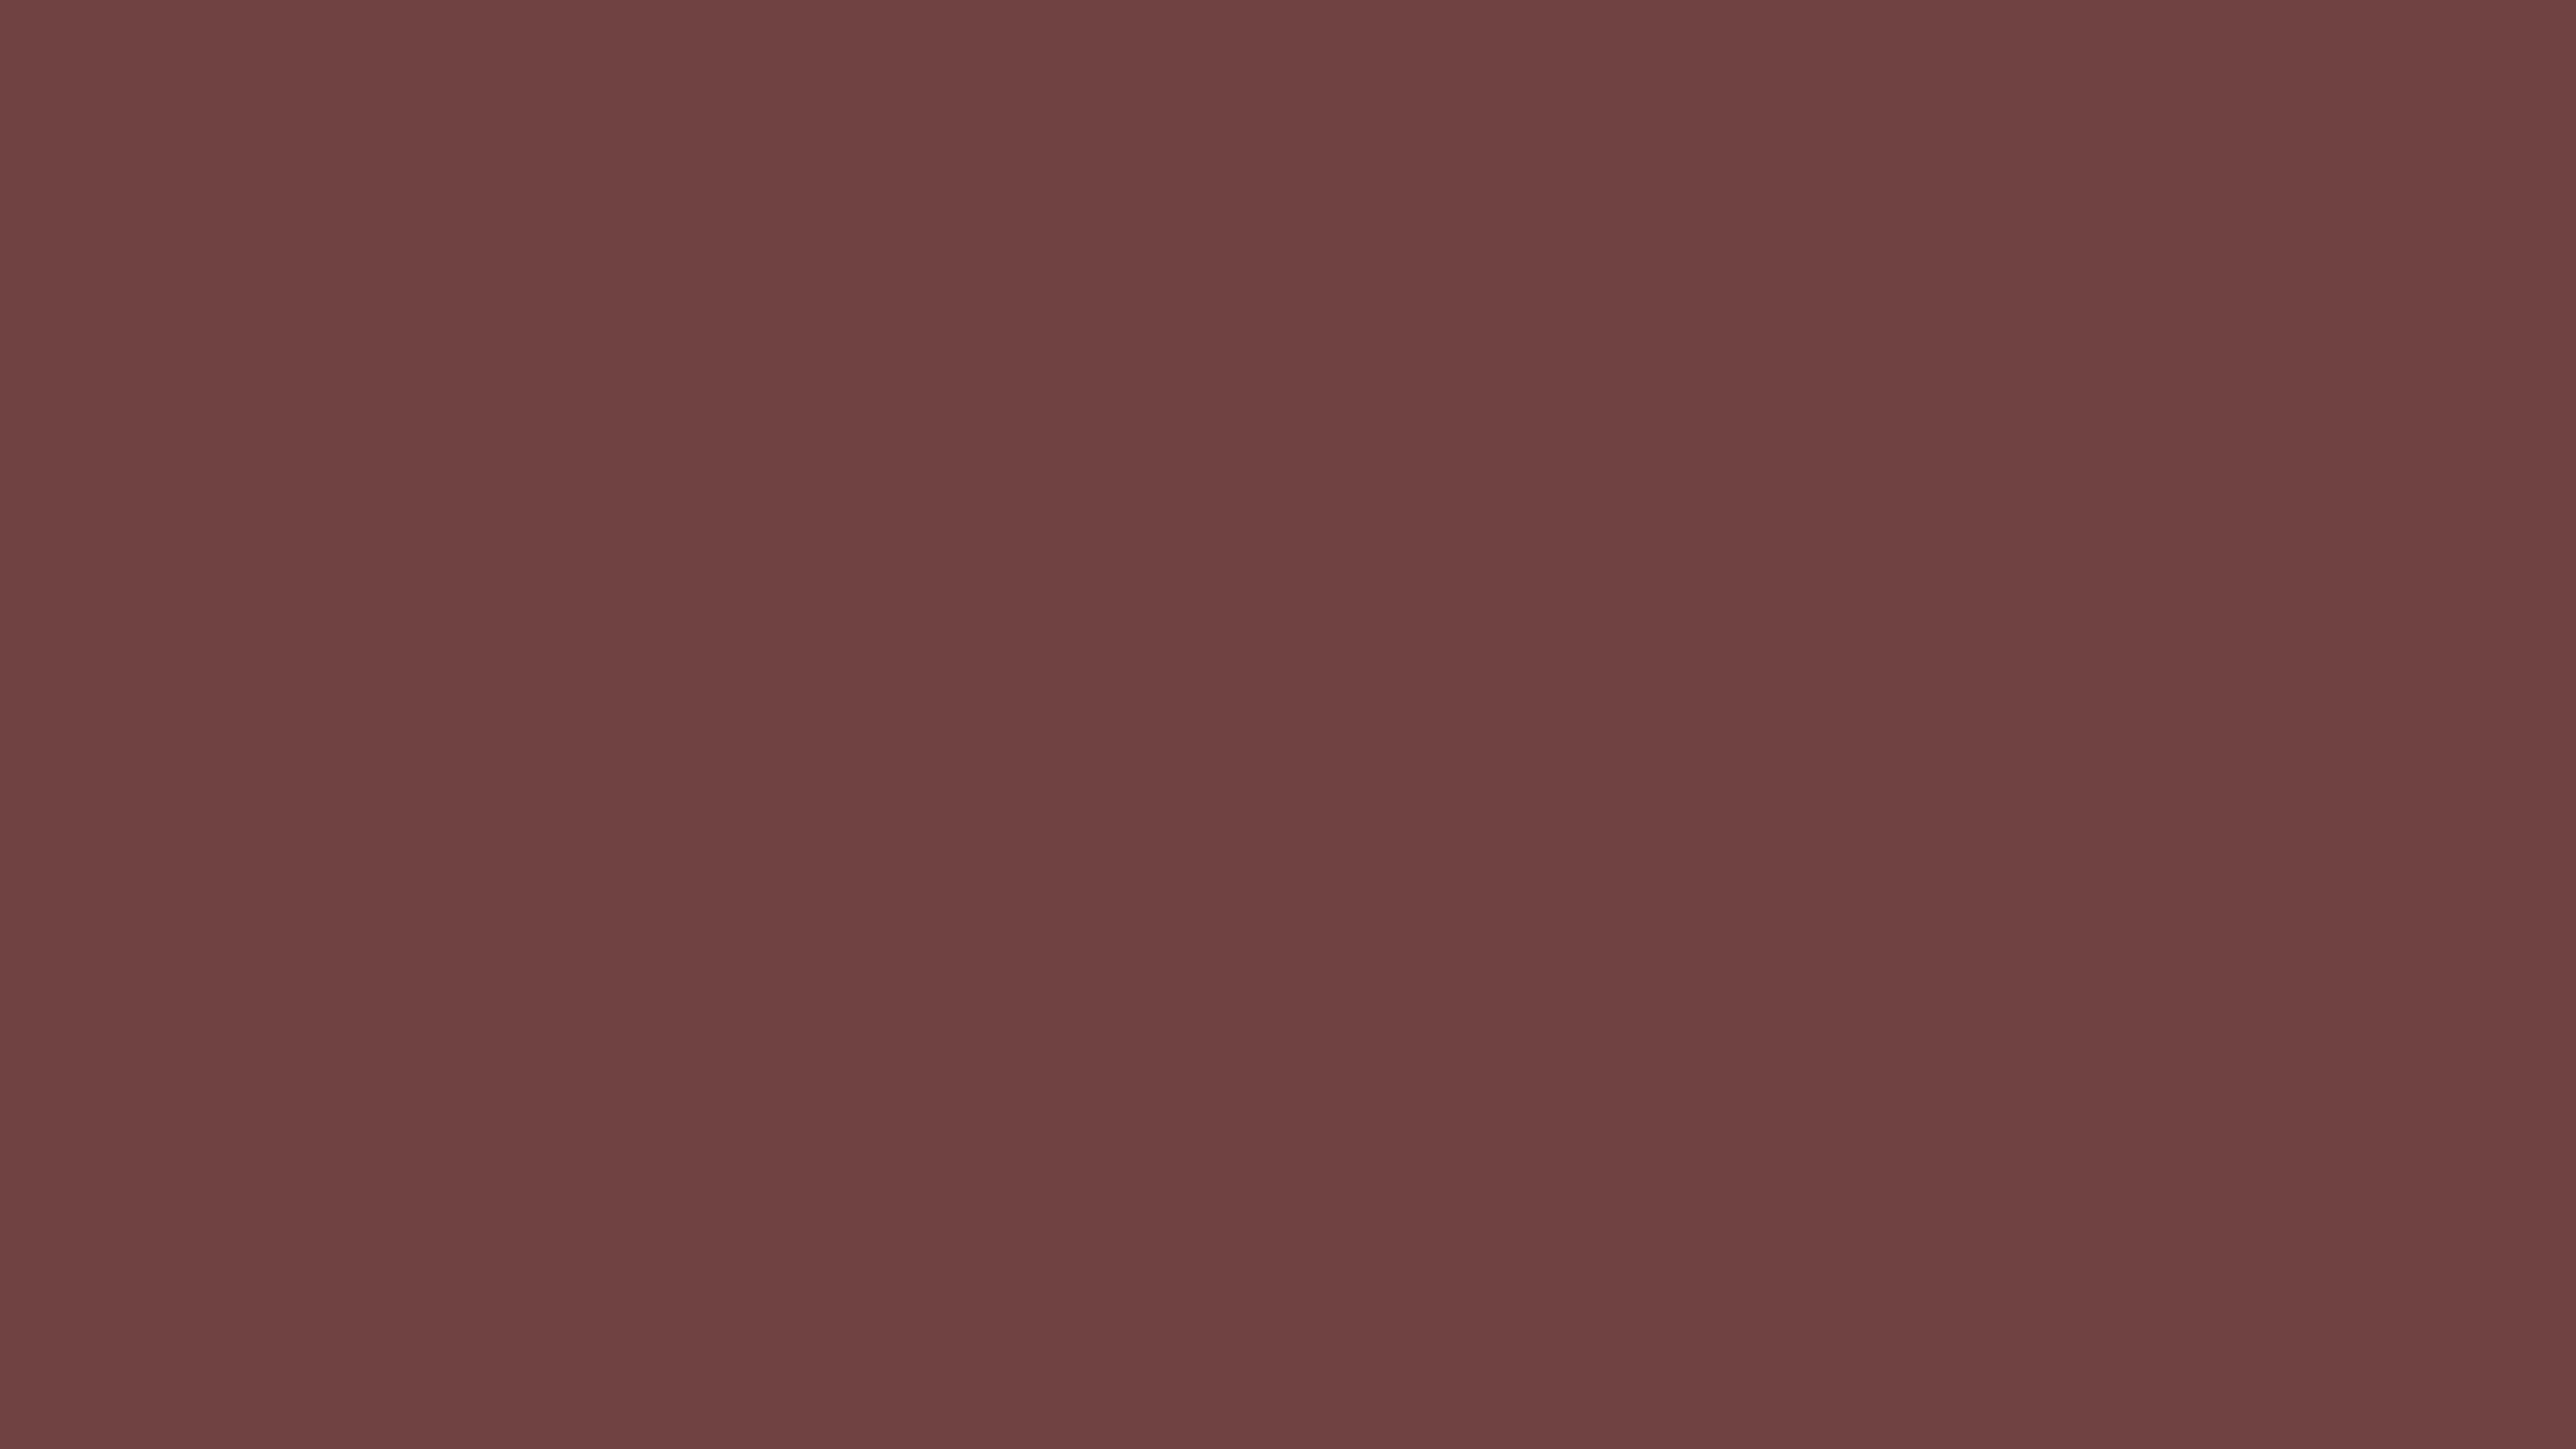 3840x2160 Deep Coffee Solid Color Background